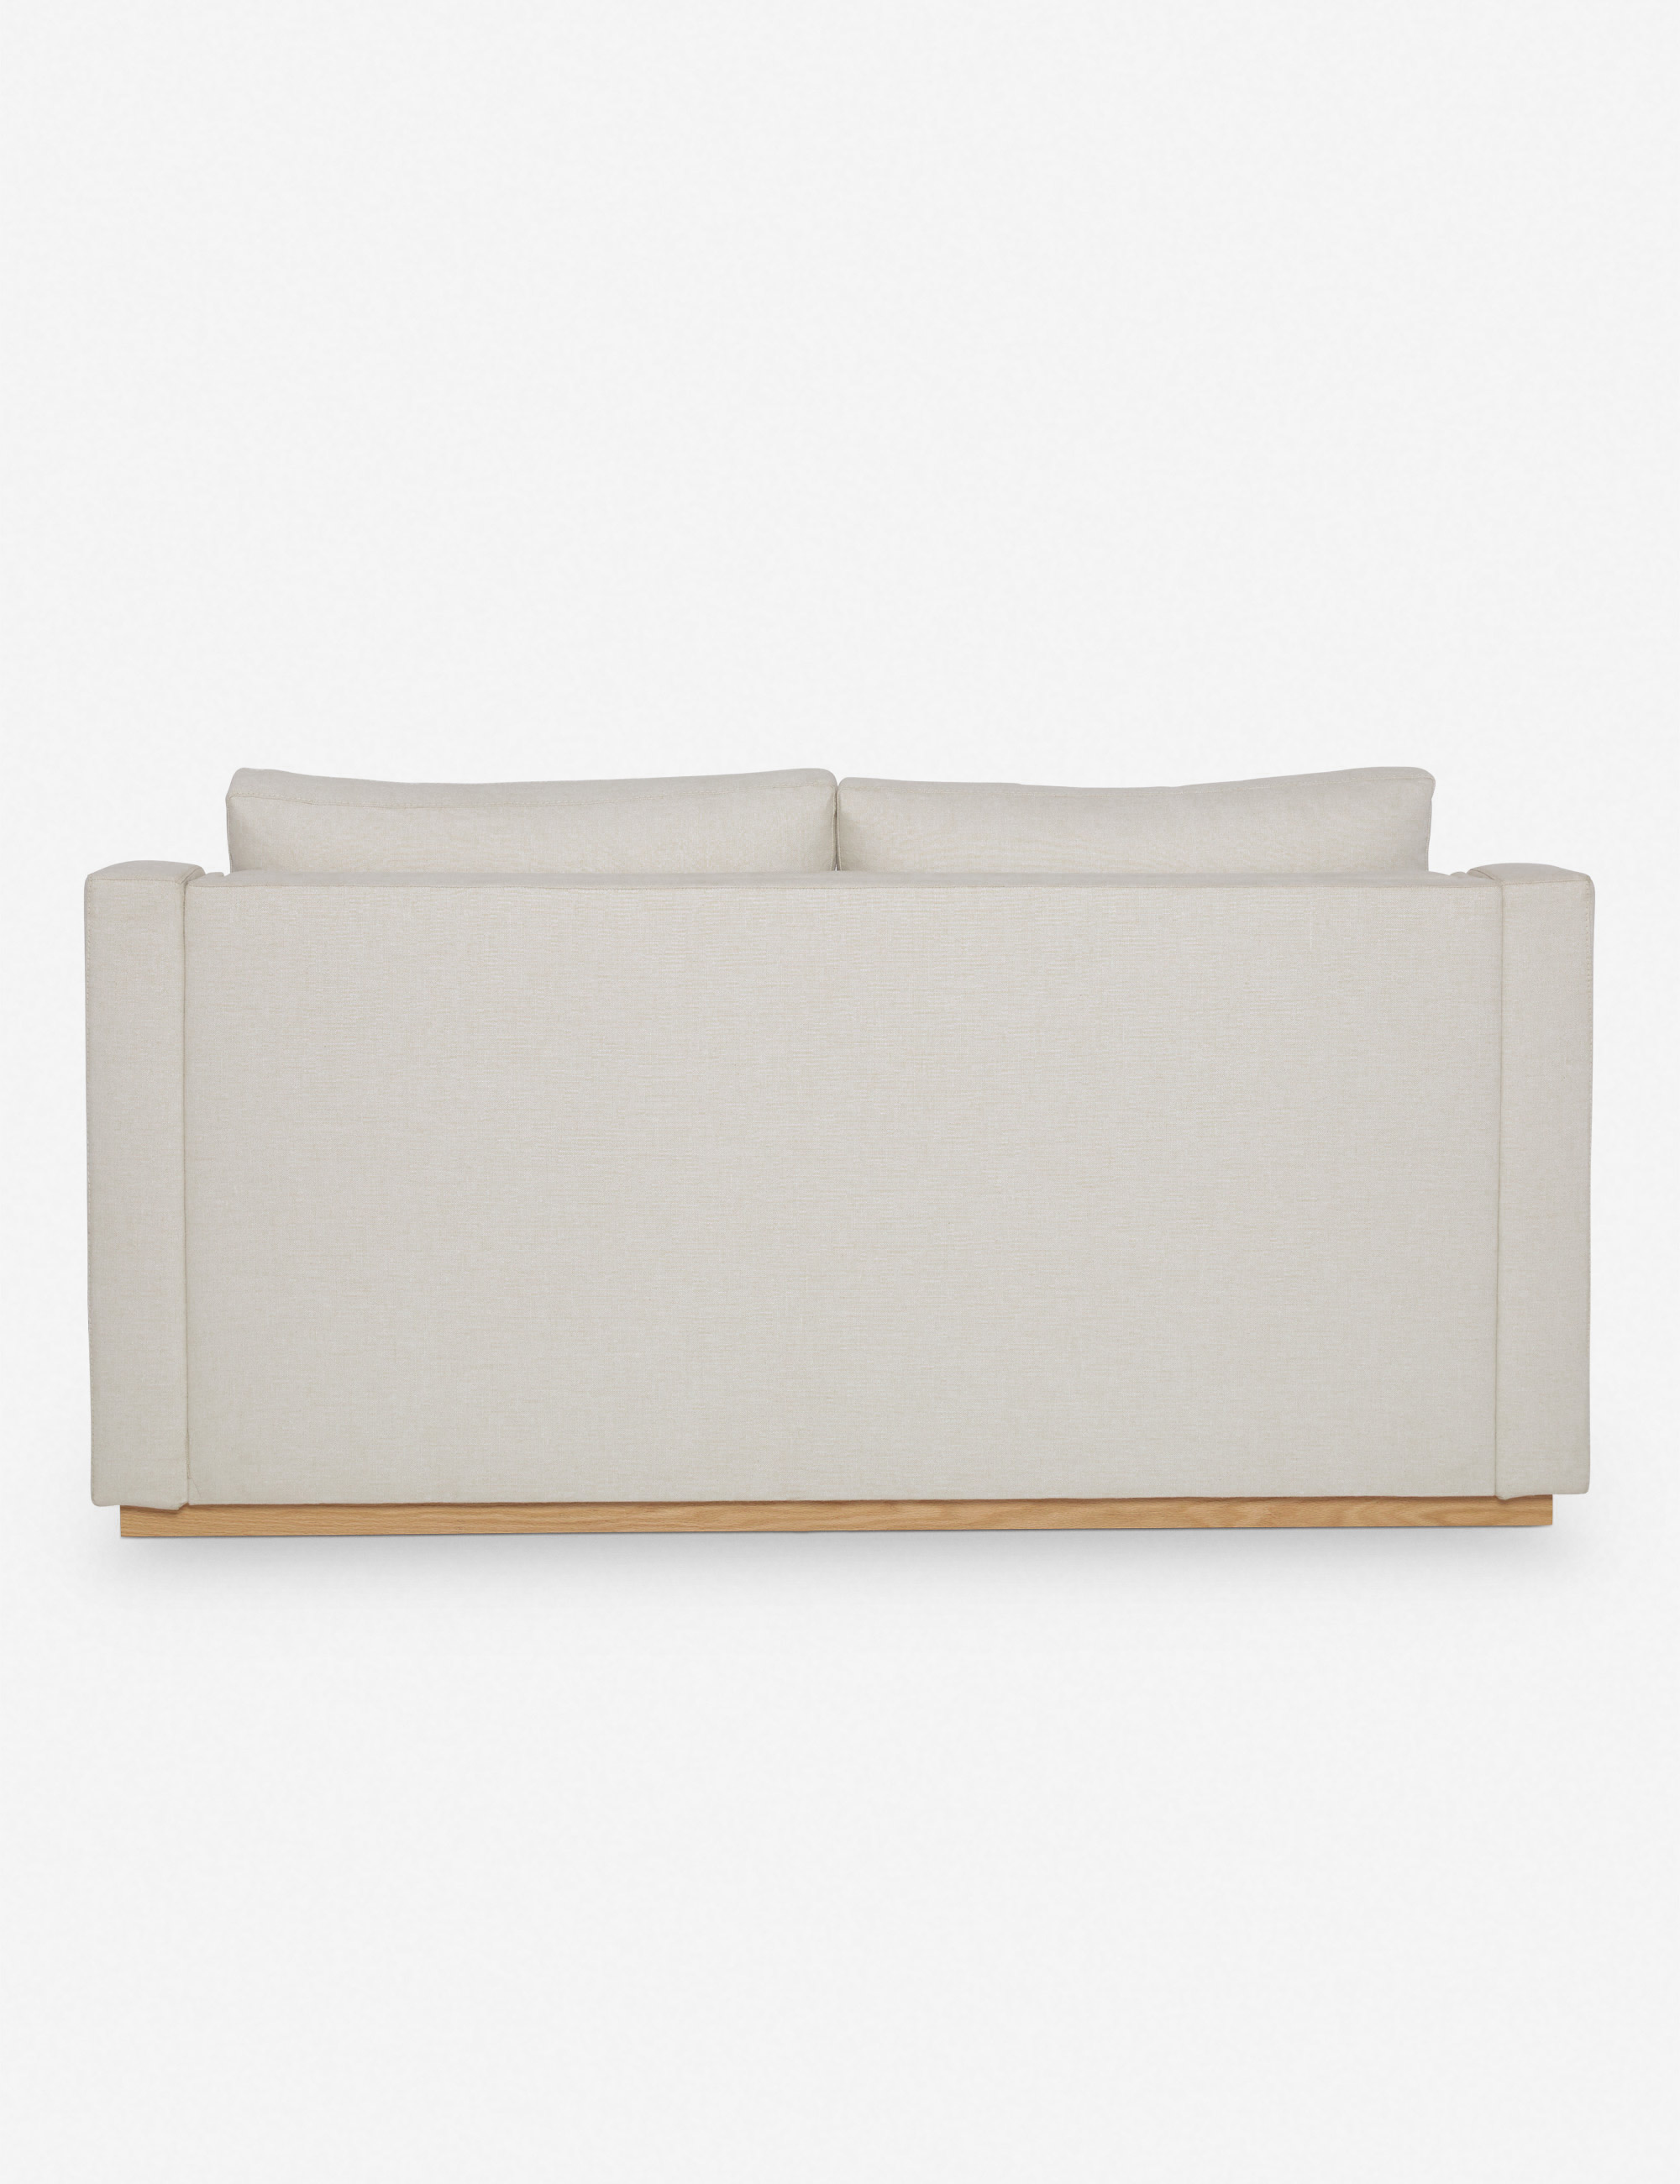 GINNY_MACDONALD_Coniston-Sleeper-Sofa-Linen-Natural-2